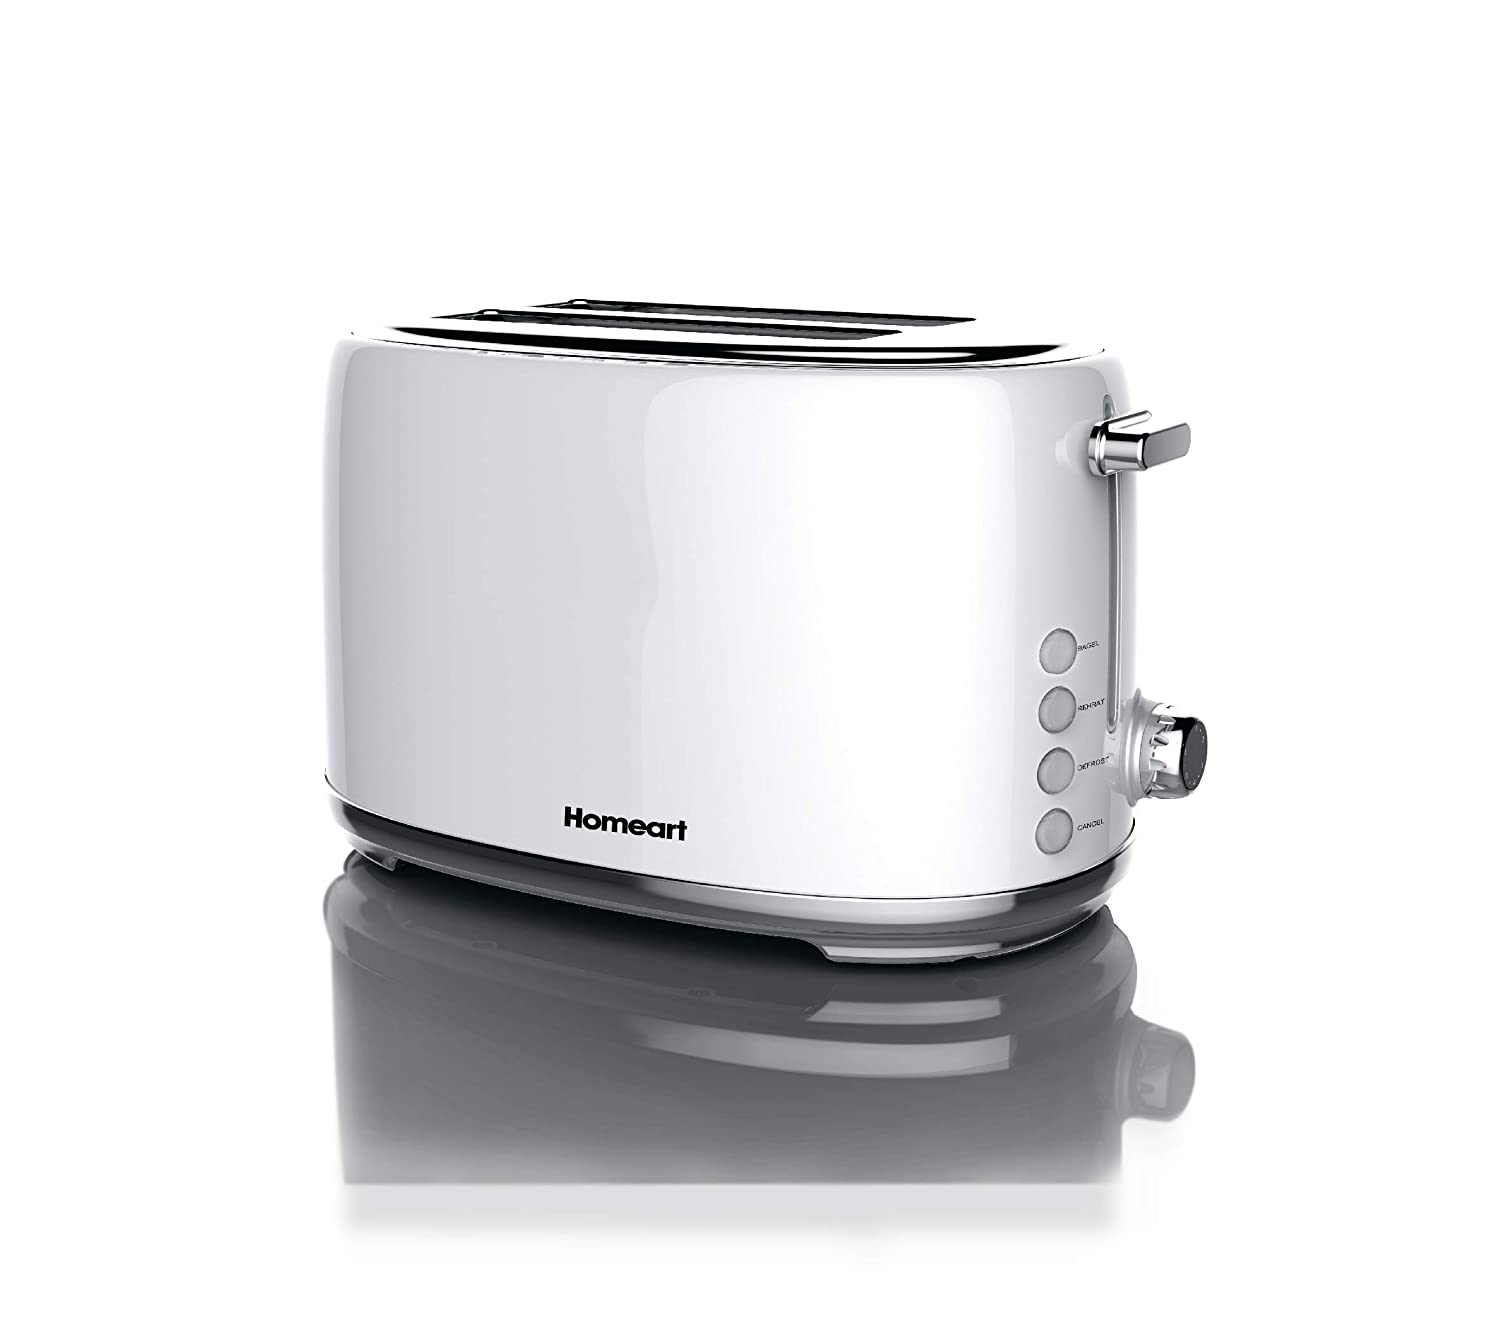 Artisan 2 Slot Toaster by Homeart   2019 Best Electric Toaster with Multi-Function Toaster Options   Vintage Toaster Stainless Steel (White)